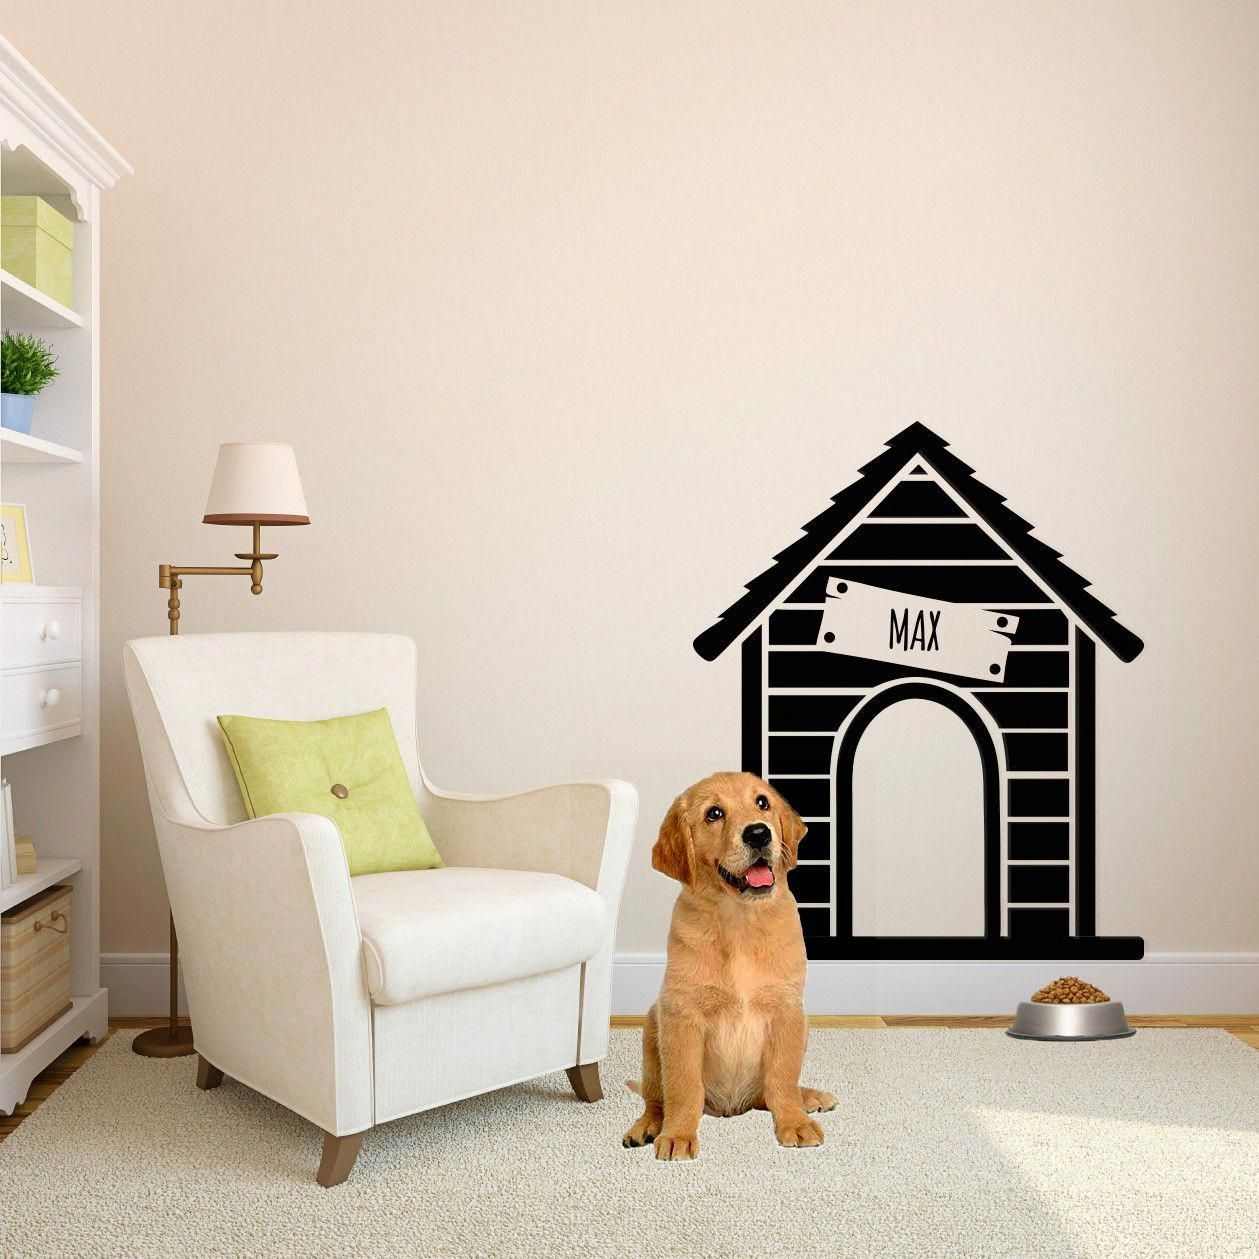 Personalized Dog House Vinyl Wall Art Decal for Homes